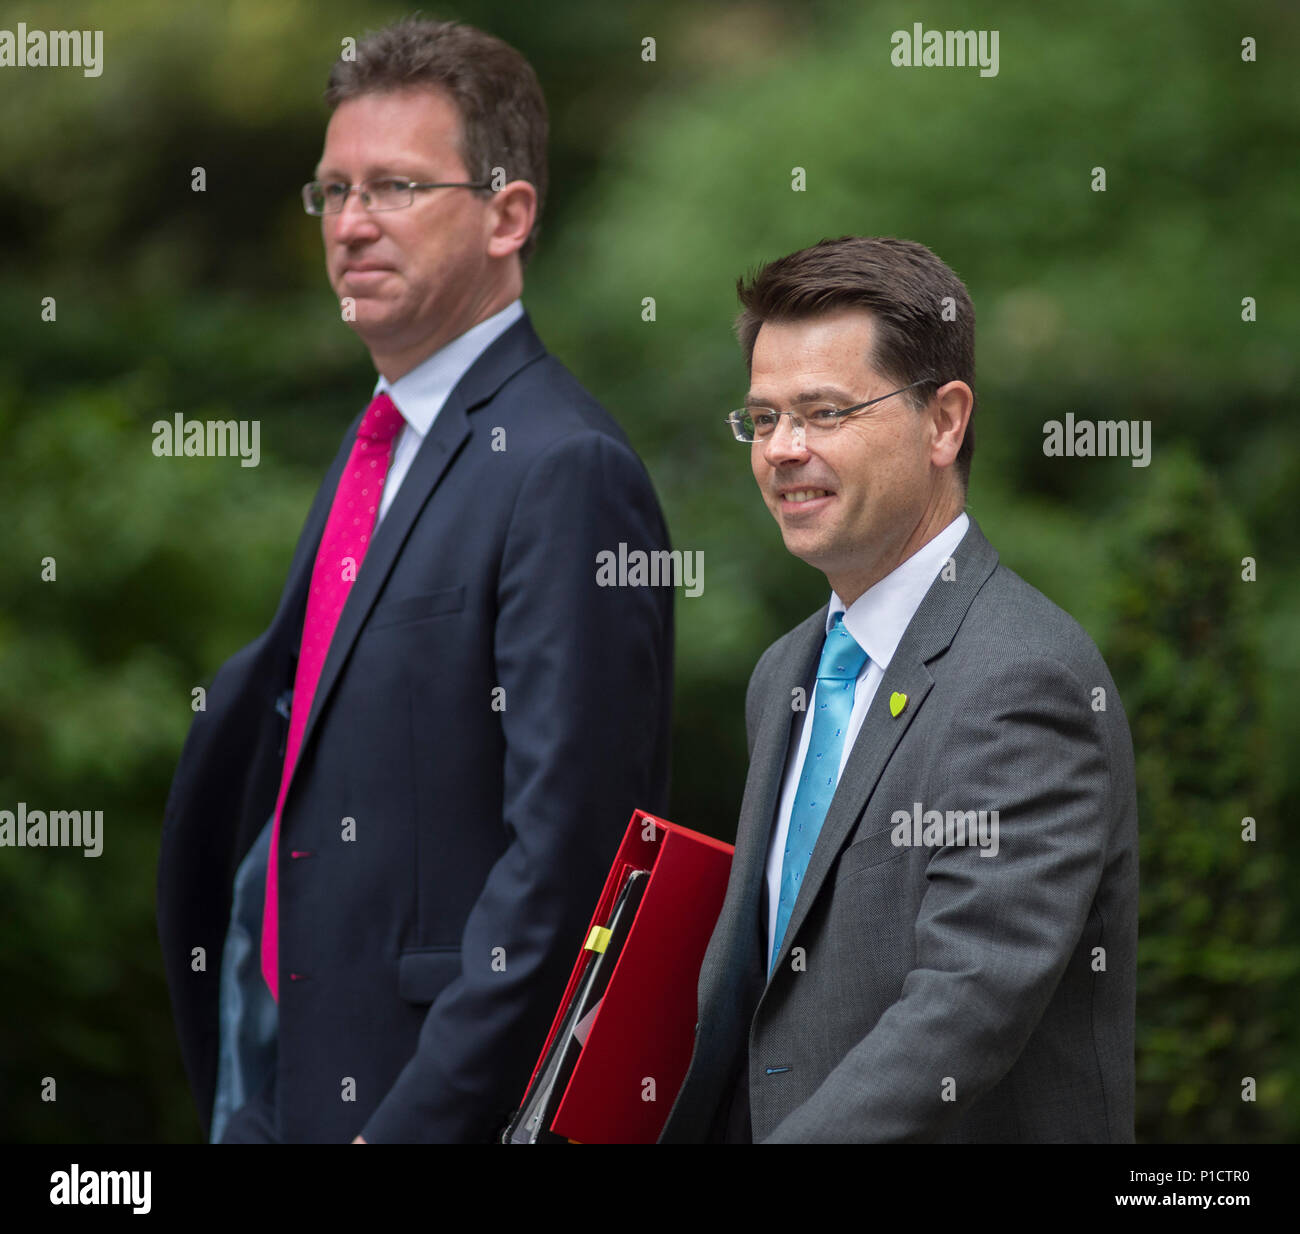 Downing Street, London, UK. 12 June 2018. Jeremy Wright QC, Attorney General in Downing Street for weekly cabinet meeting, arriving with James Brokenshire, Secretary of State for Housing, Communities and Local Government wearing a Grenfell Green Lapel Badge. Credit: Malcolm Park/Alamy Live News. Stock Photo